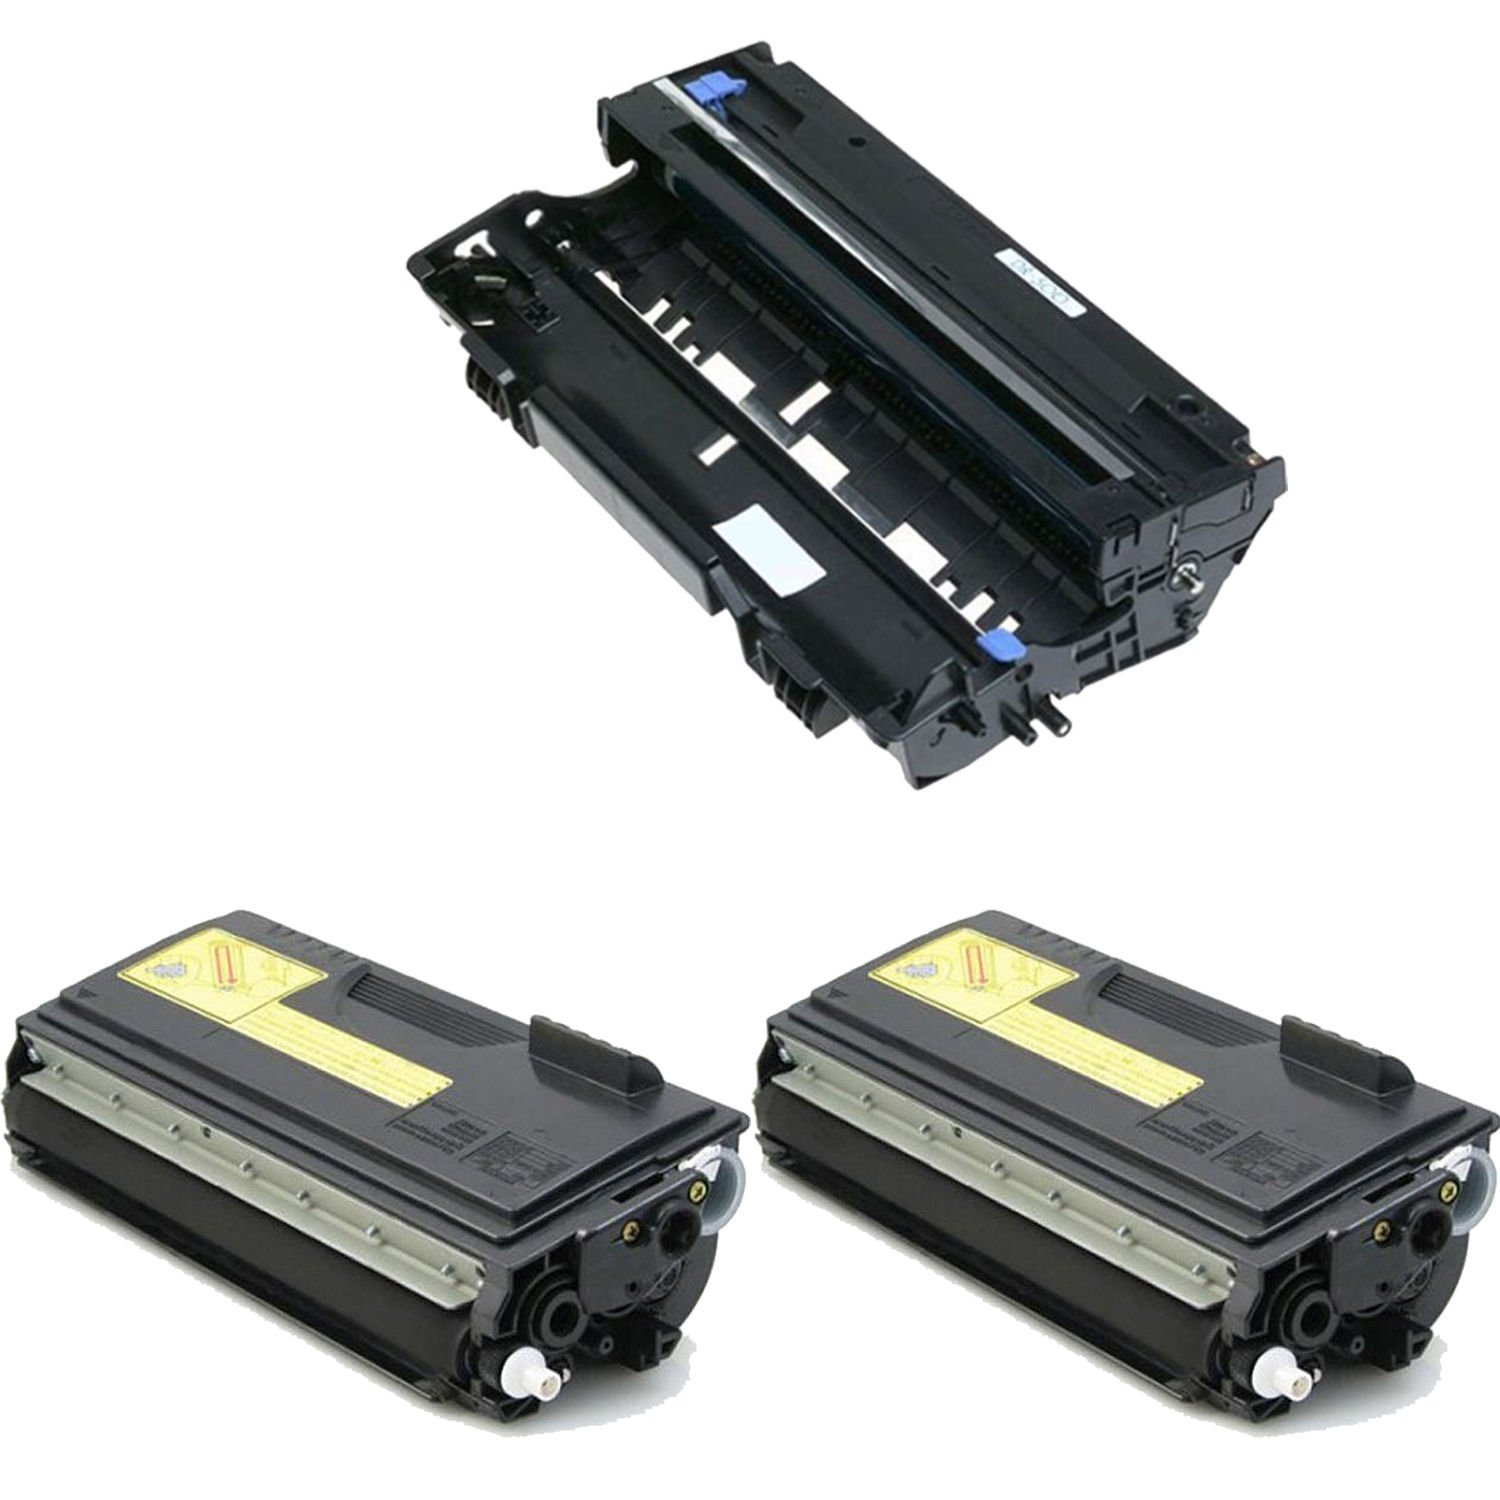 Office Mountain 3-Pack Compatible Black 2 X TN560 Toner & DR500 Drum Cartridge for Brother HL-5050 MFC-8820 DCP-8025 HL-1850 MFC-8420 DCP-8020 HL-1650 HL-1870 HL-1670 HL-5070 HL-5040